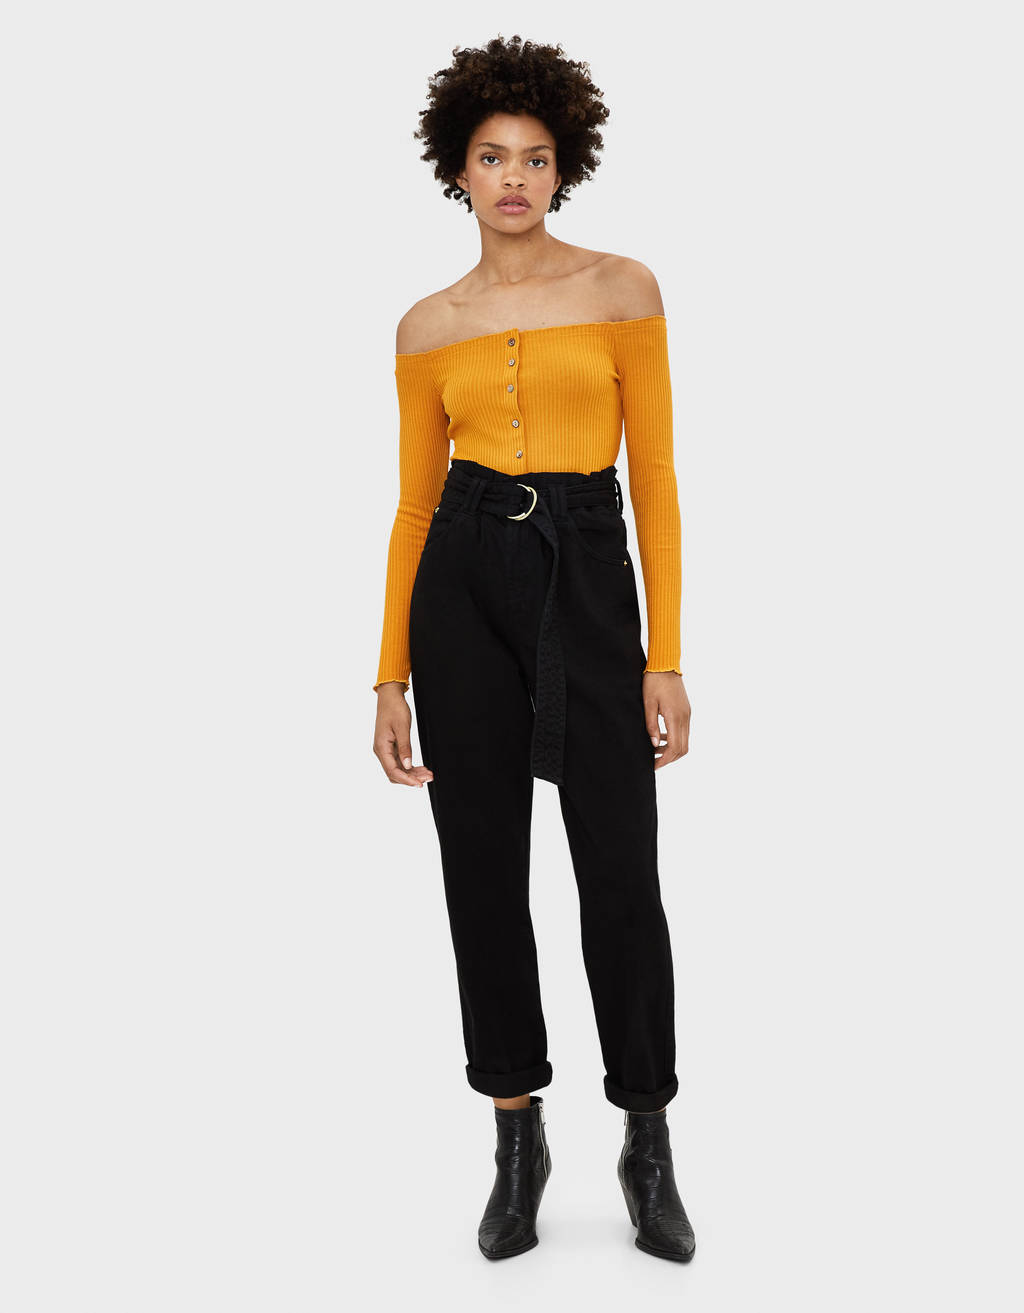 Tie front off-the-shoulder top